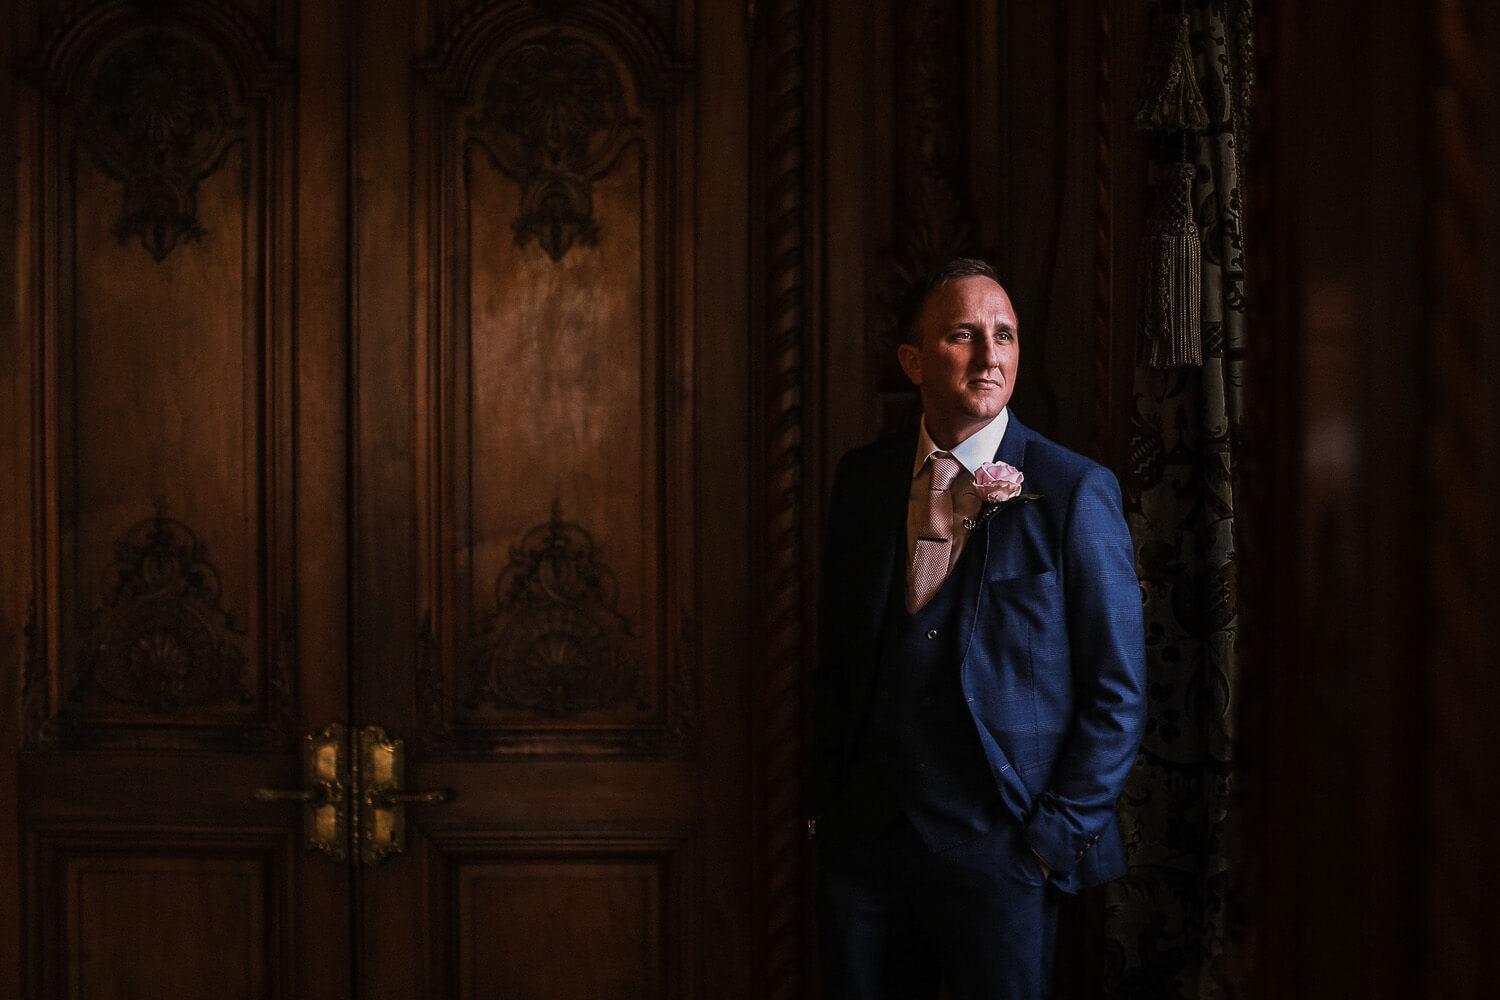 Portraits go groom wearing blue suit at Knowsley Hall wedding photography